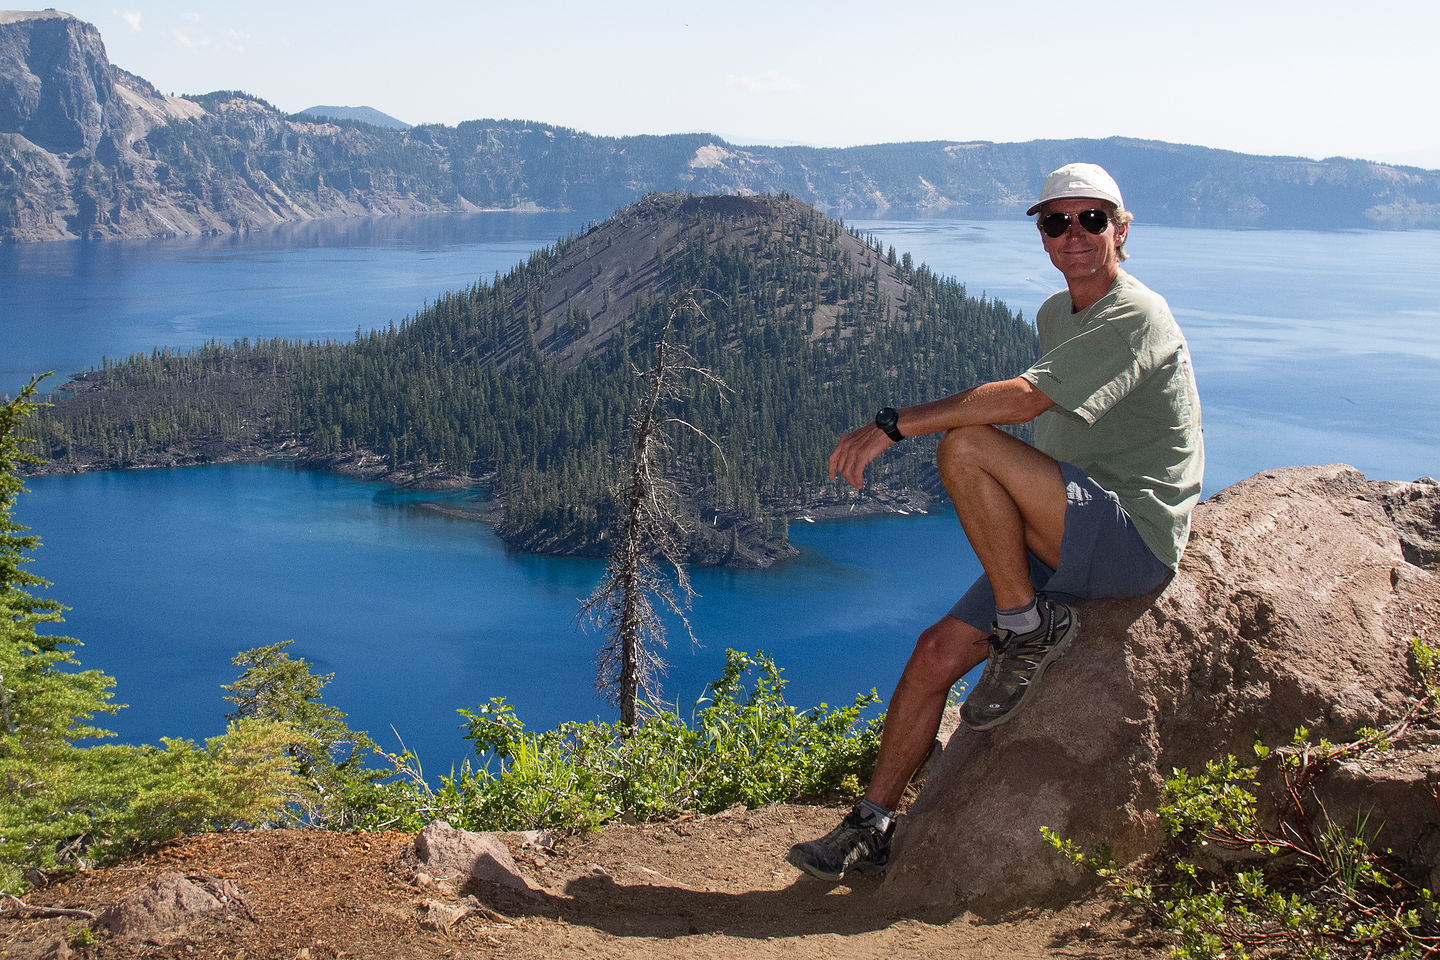 Herb at Crater Lake Overlook